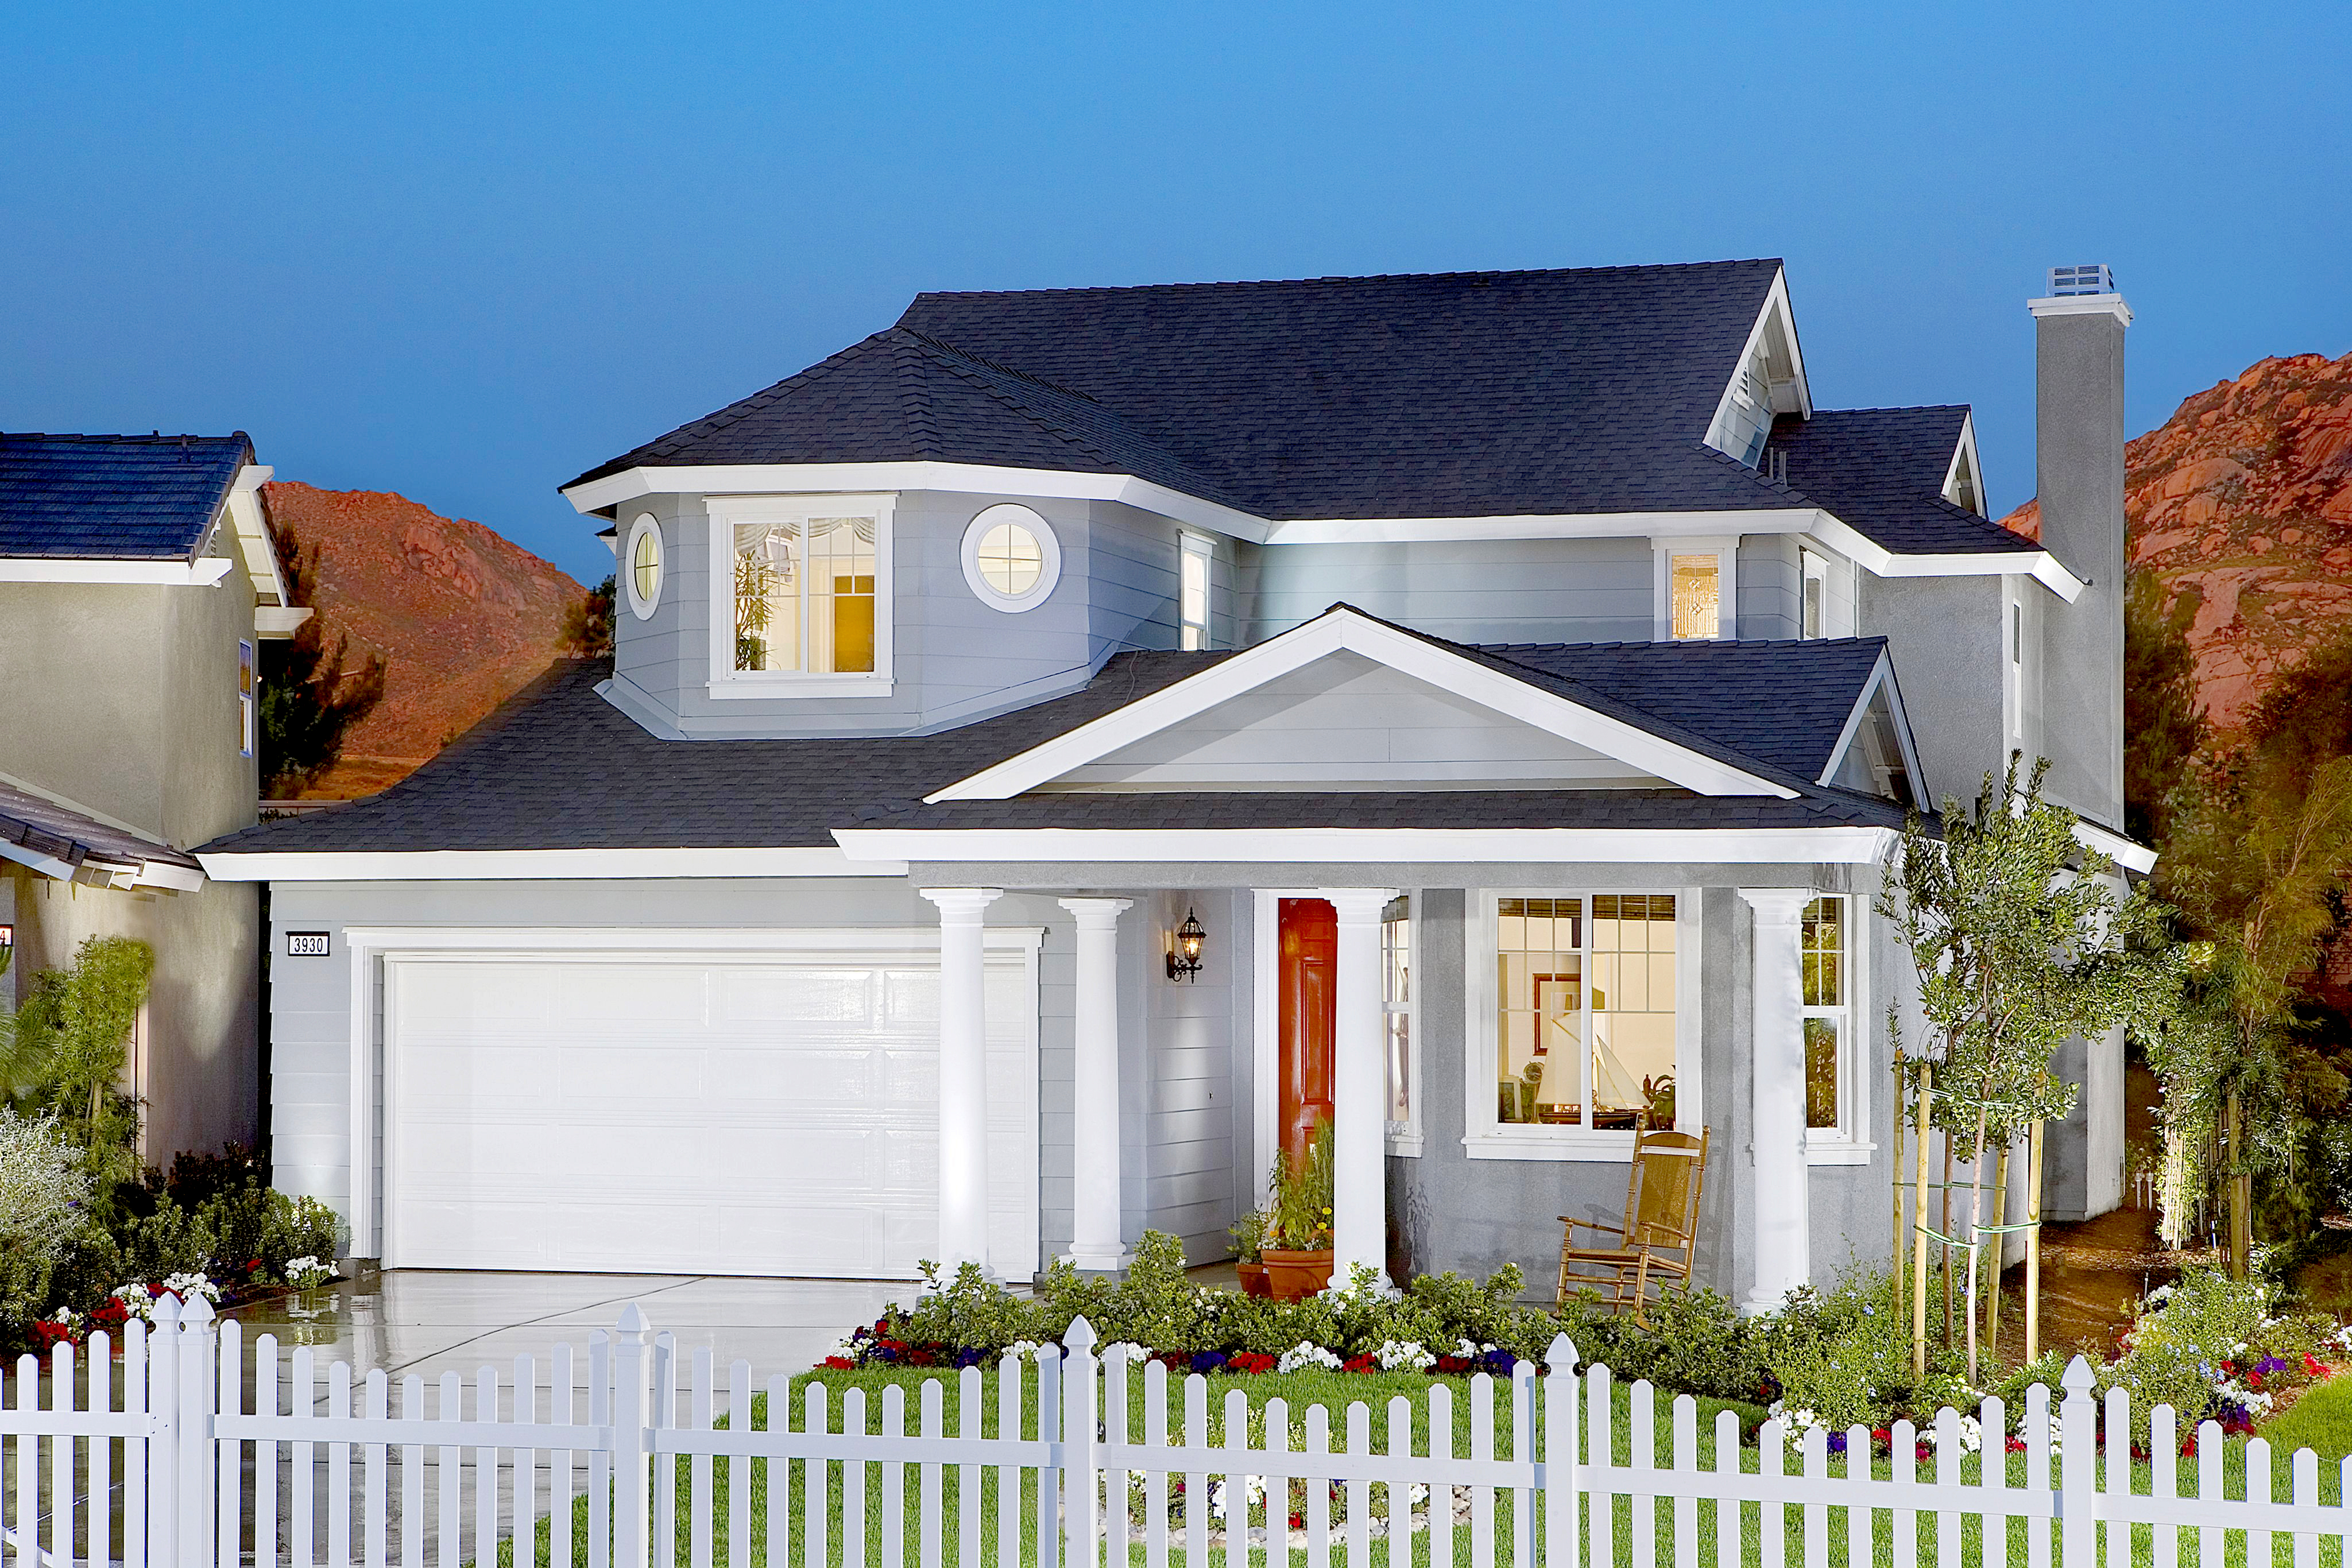 Single family production homes lro inc for Houses for homes